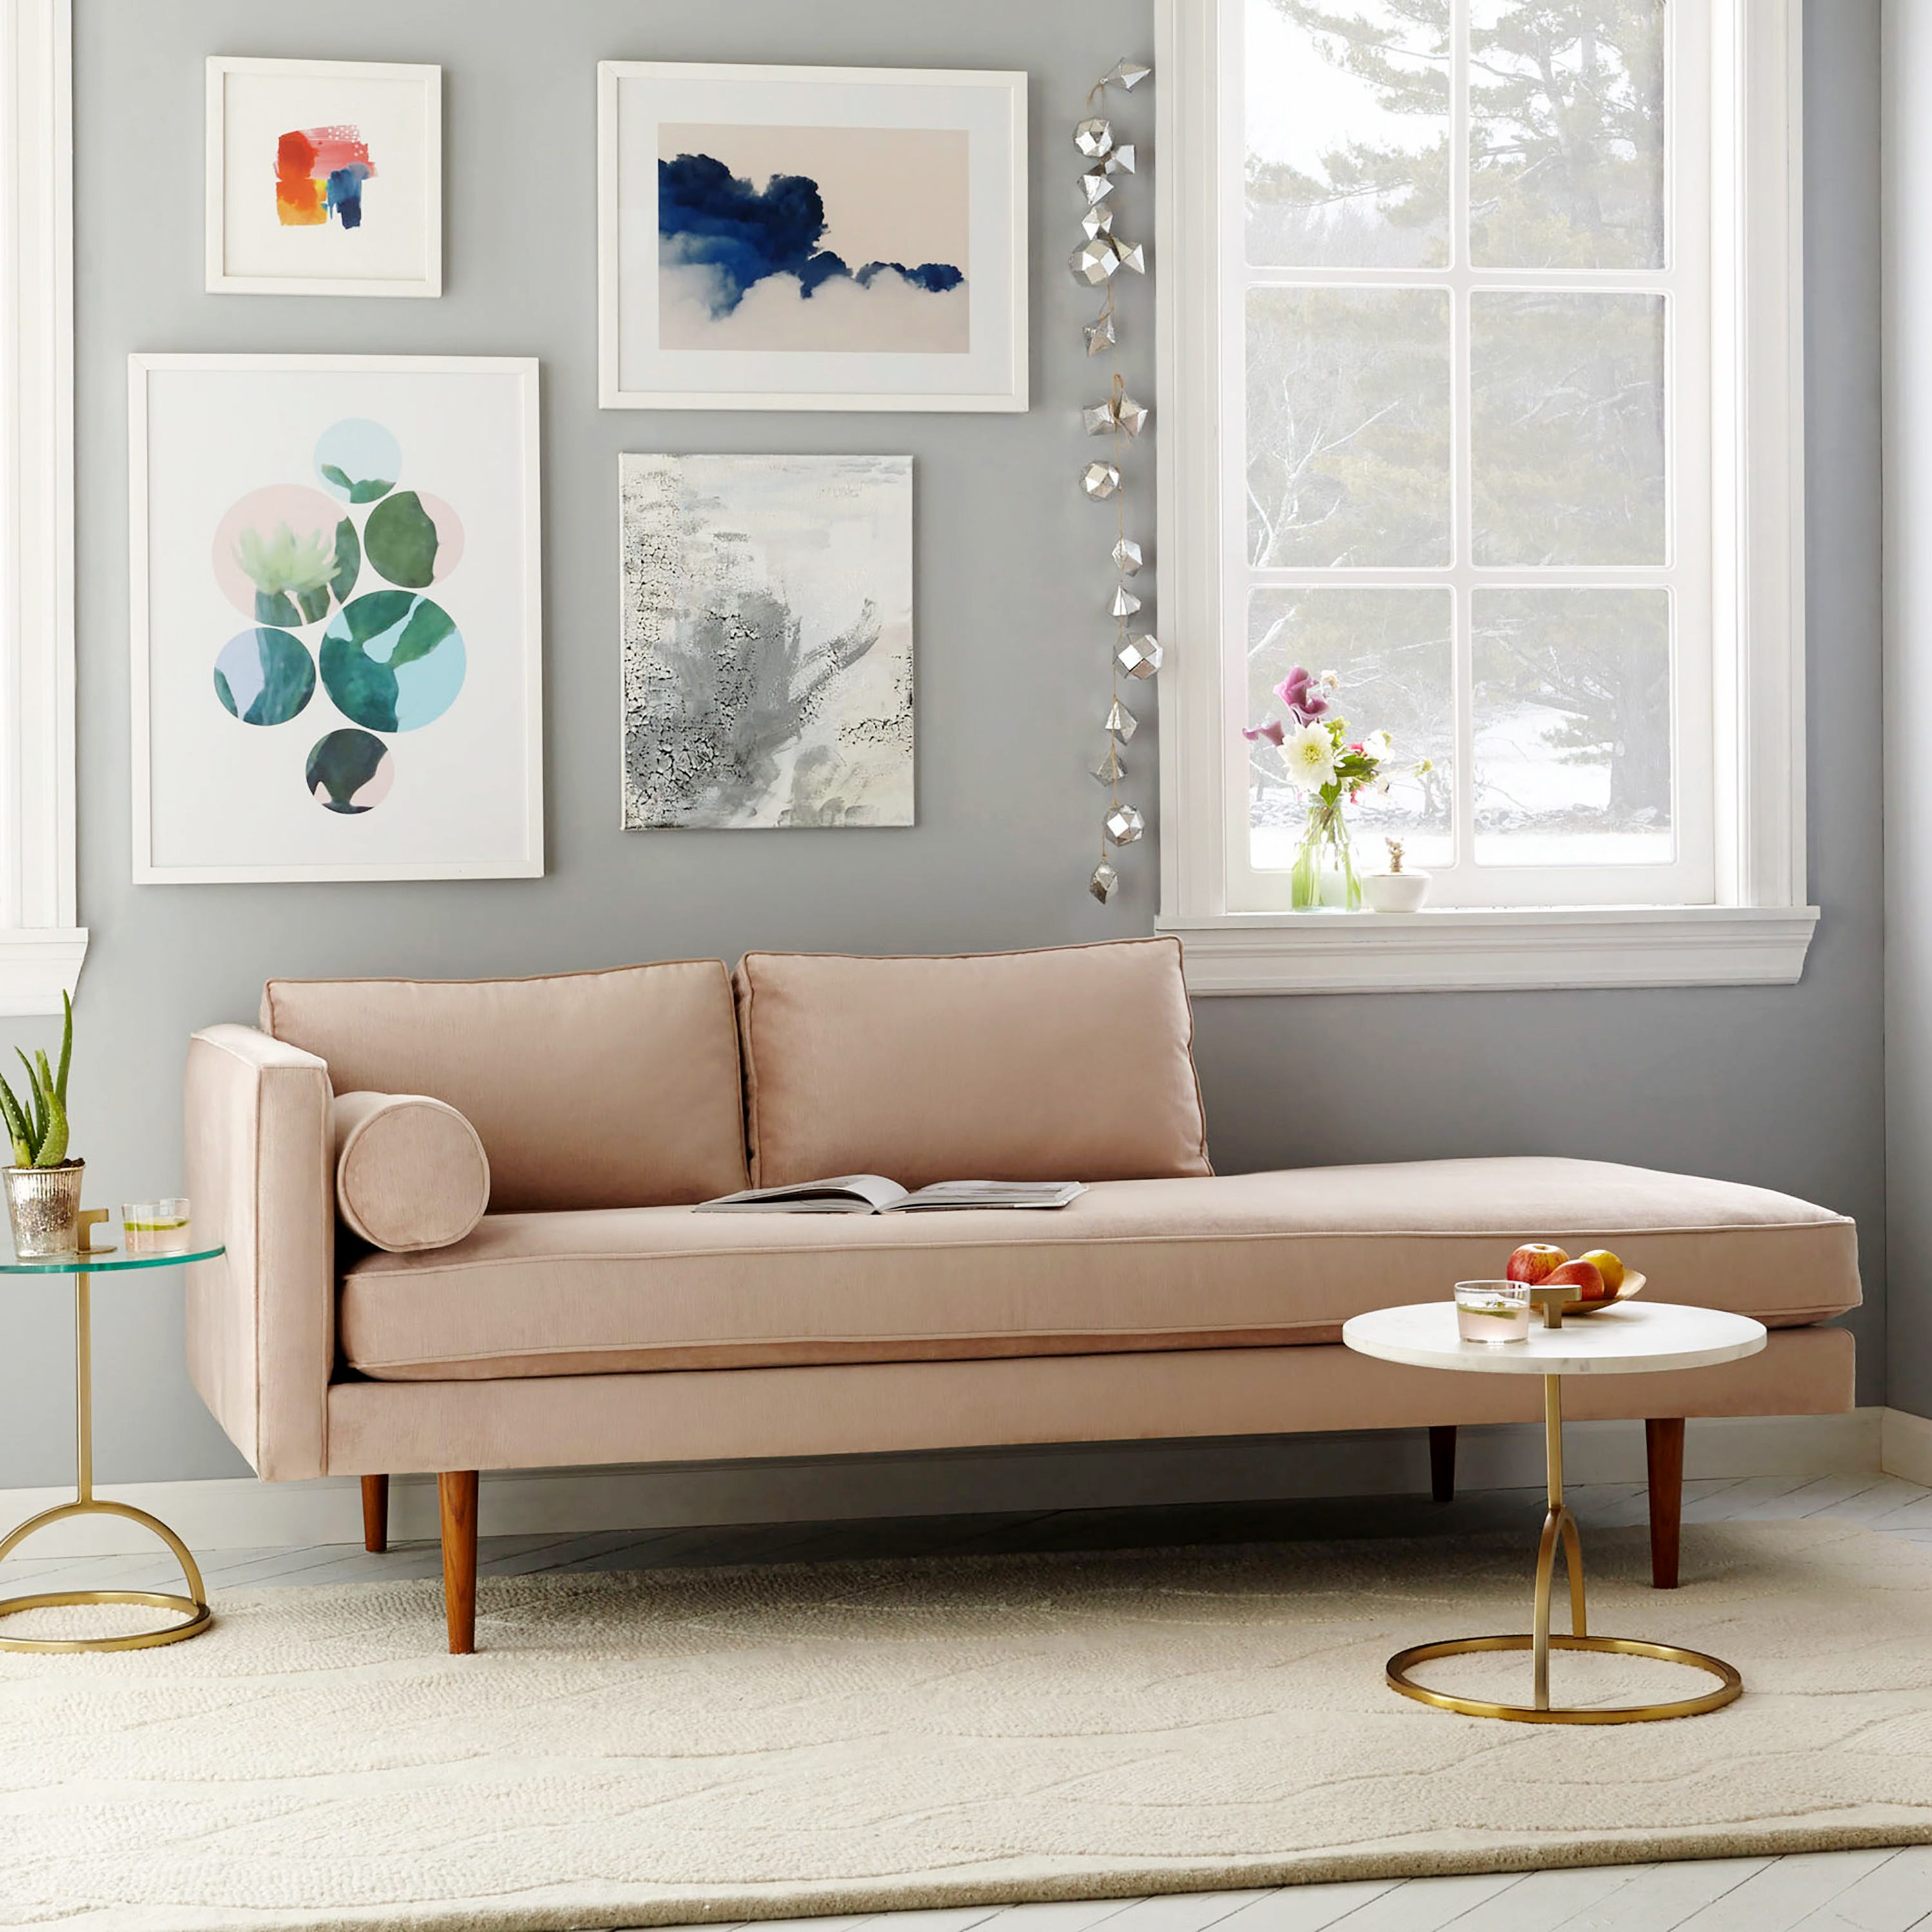 The Monroe Mid Century Chaise Lounger In Dusty Blush